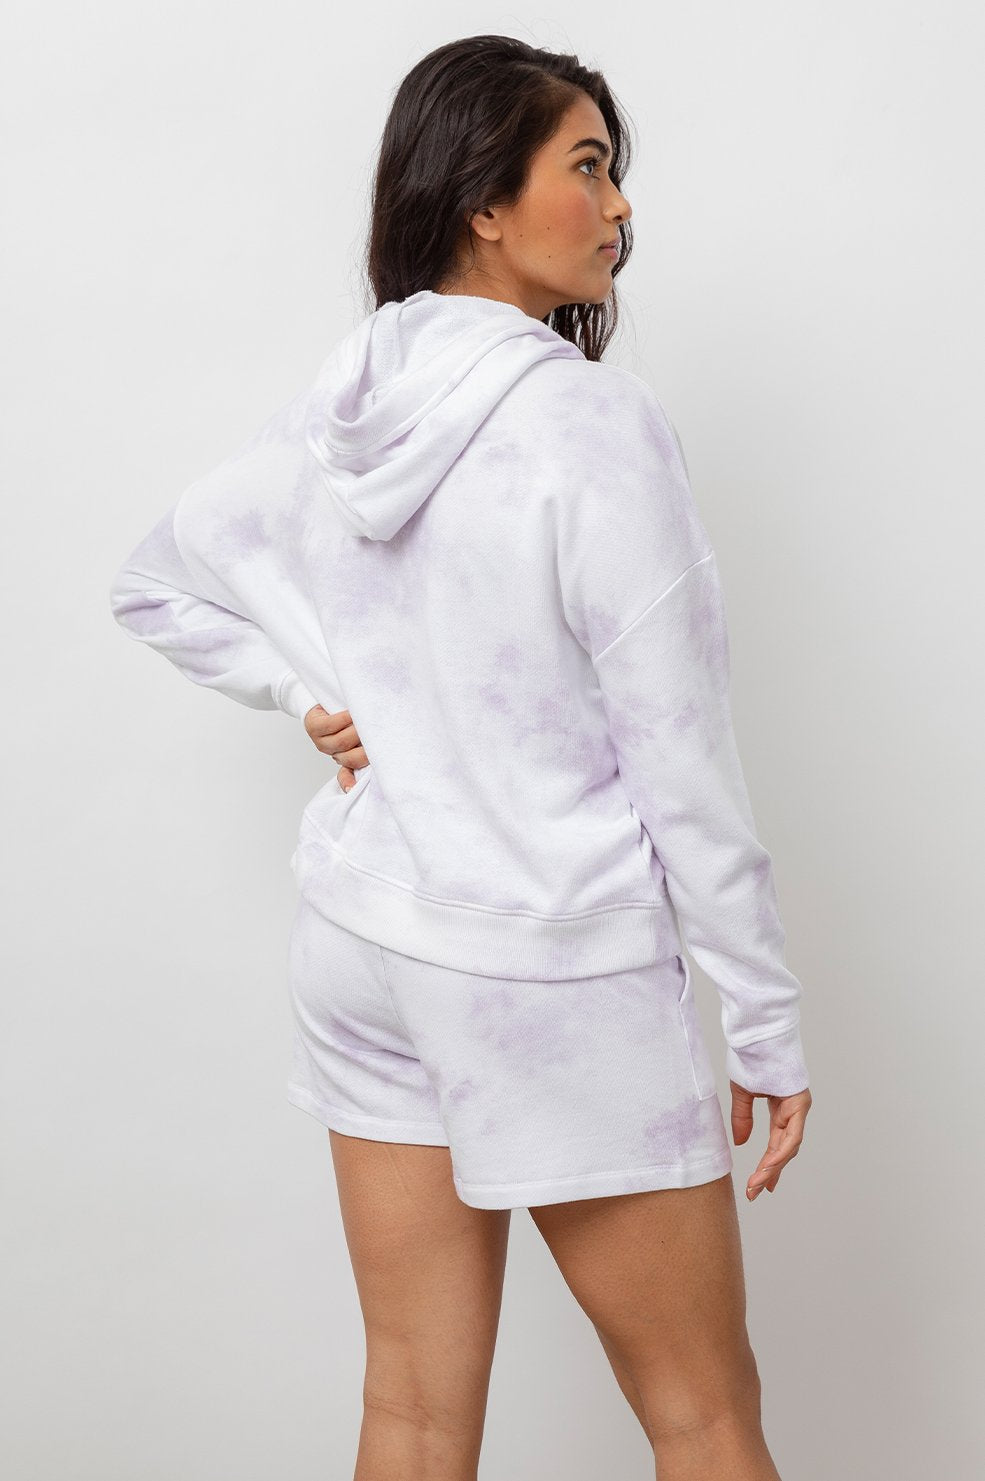 Murray Hooded Sweatshirt in Lavender Tie Dye